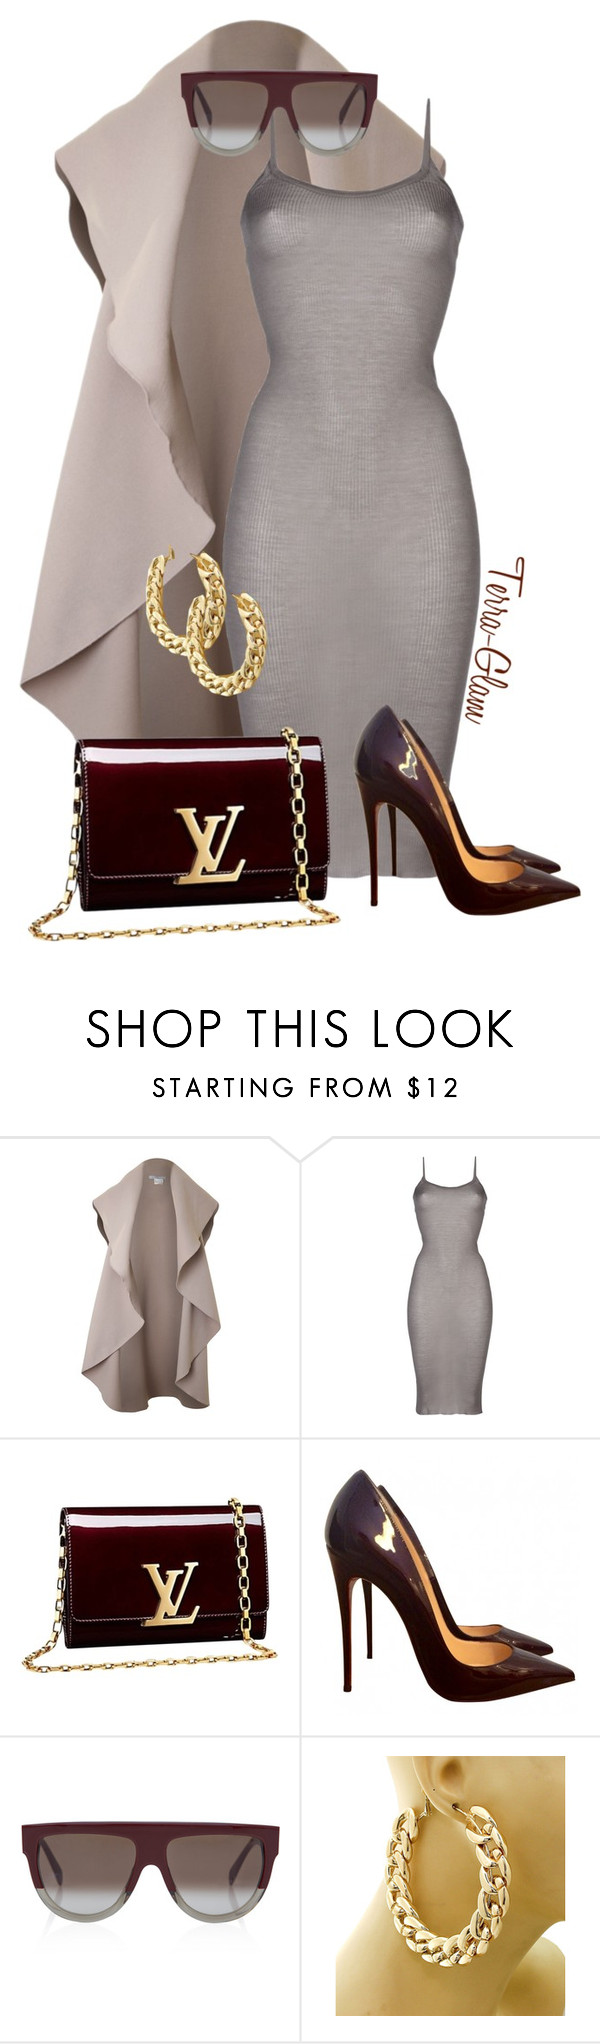 """She's Too Cool"" by terra-glam ❤ liked on Polyvore featuring Rick Owens, Louis Vuitton, Christian Louboutin and CÉLINE"